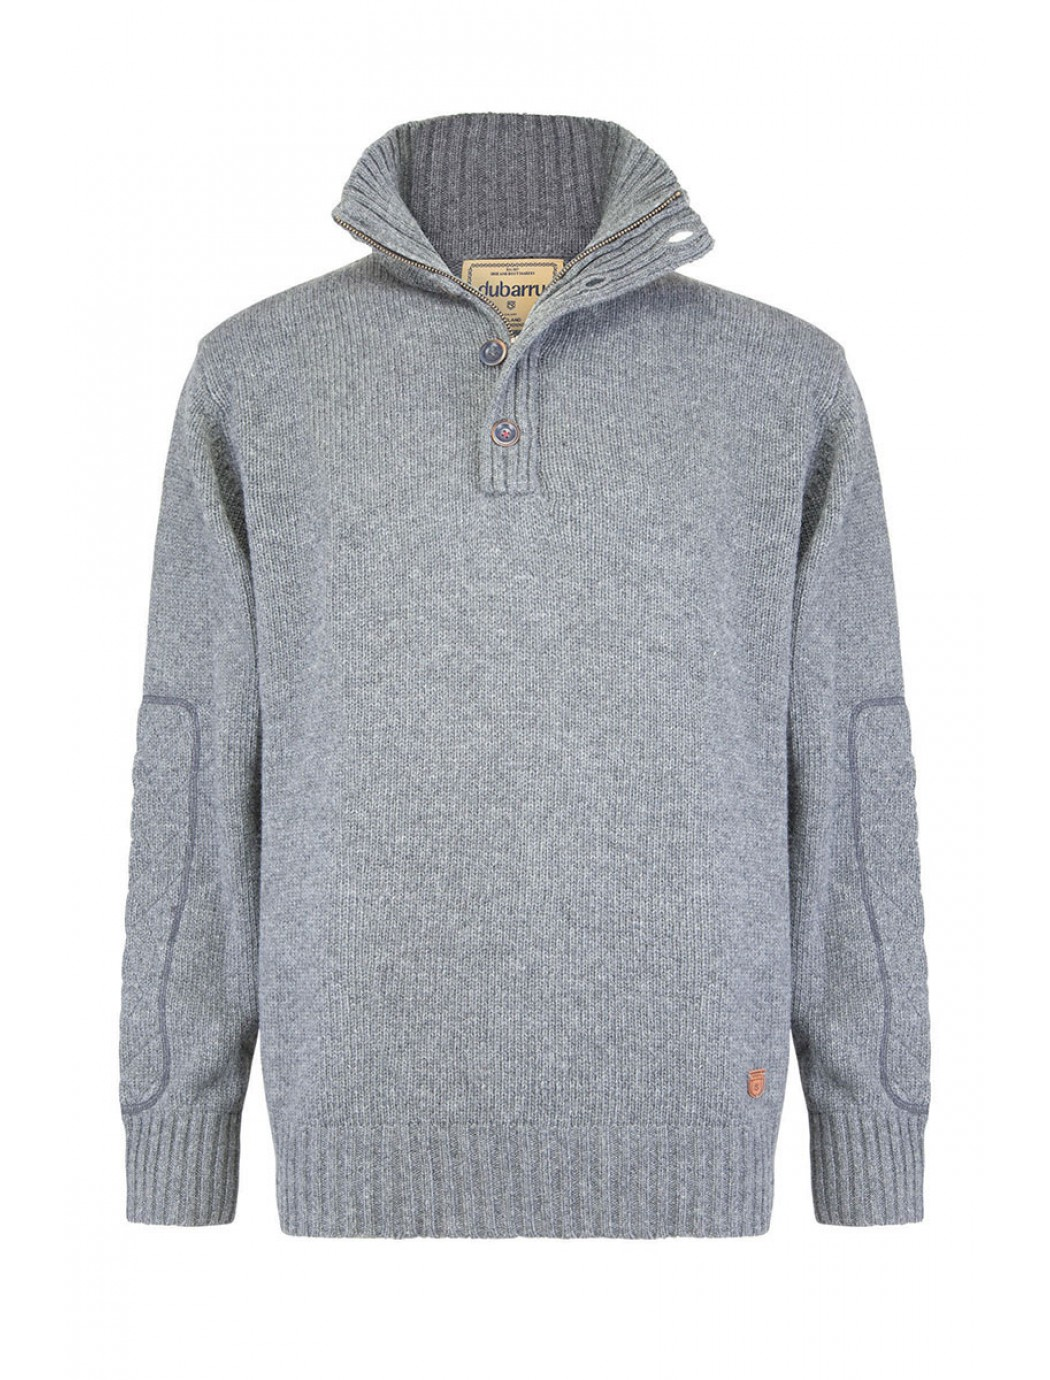 shakelton-mens-knits-cottons-grey 1